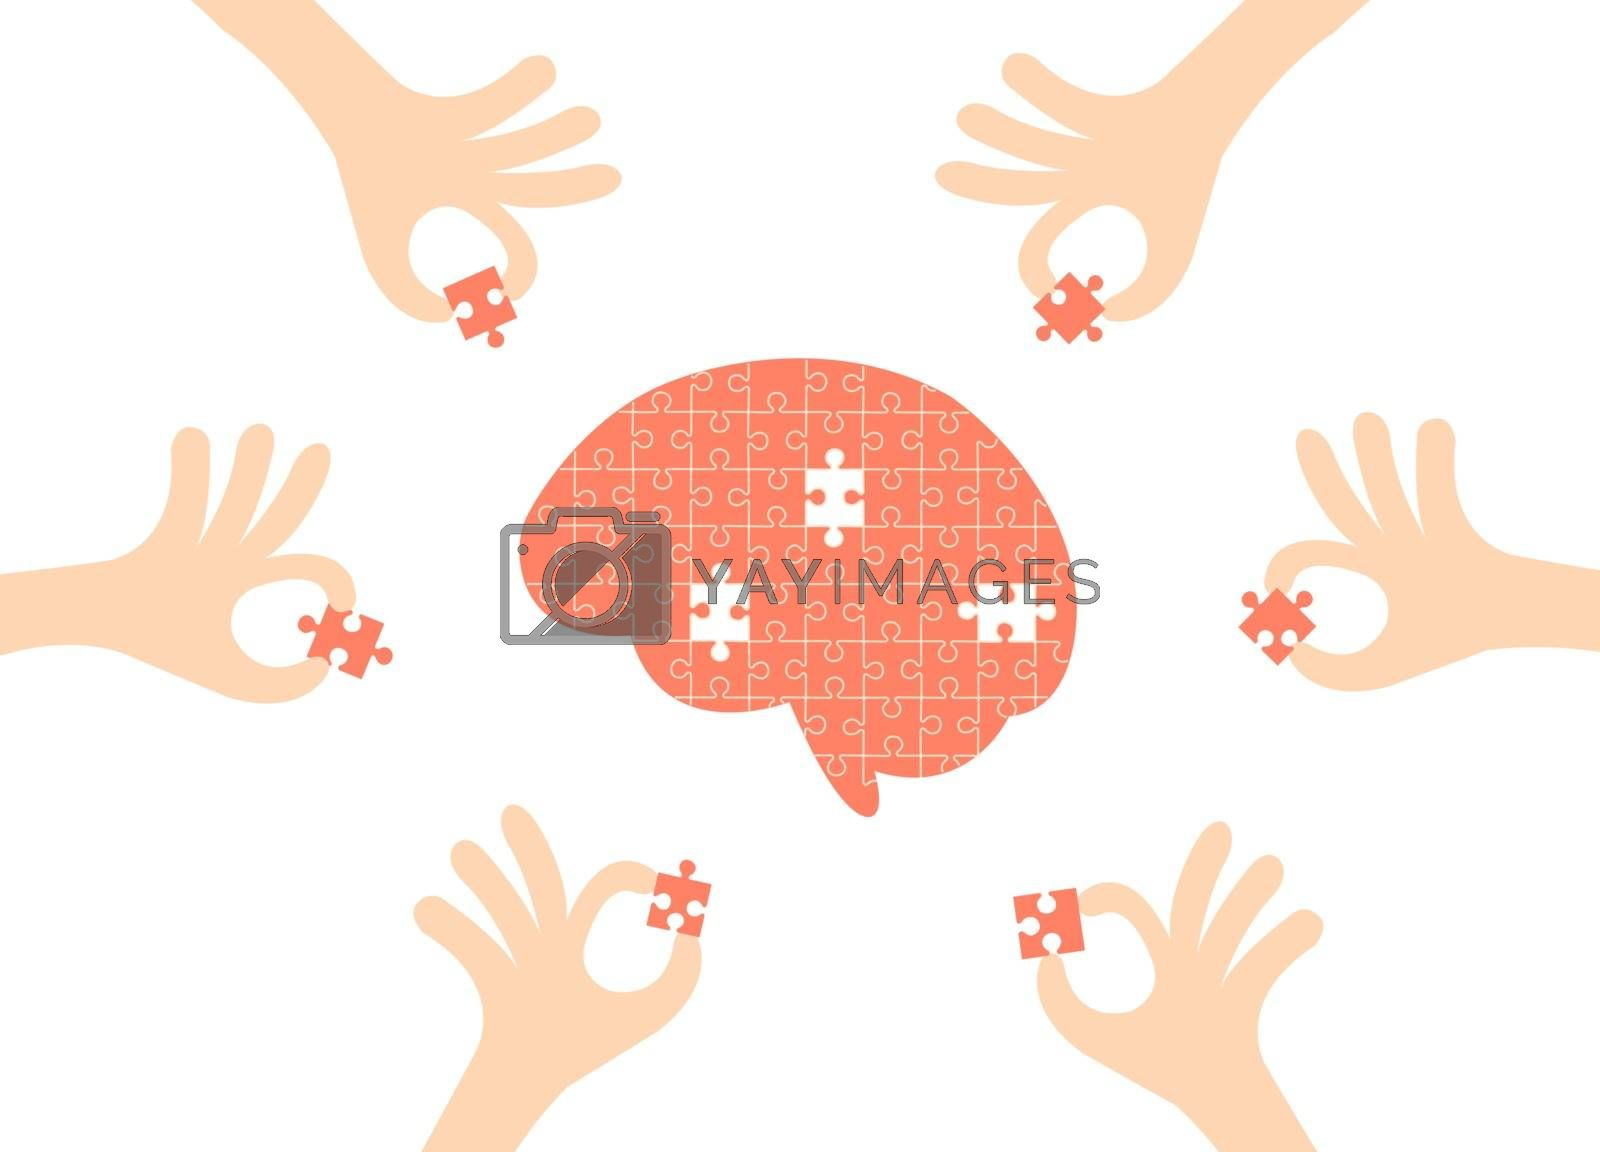 Brain jigsaw with hand holding pieces of the puzzle isolated on white background.